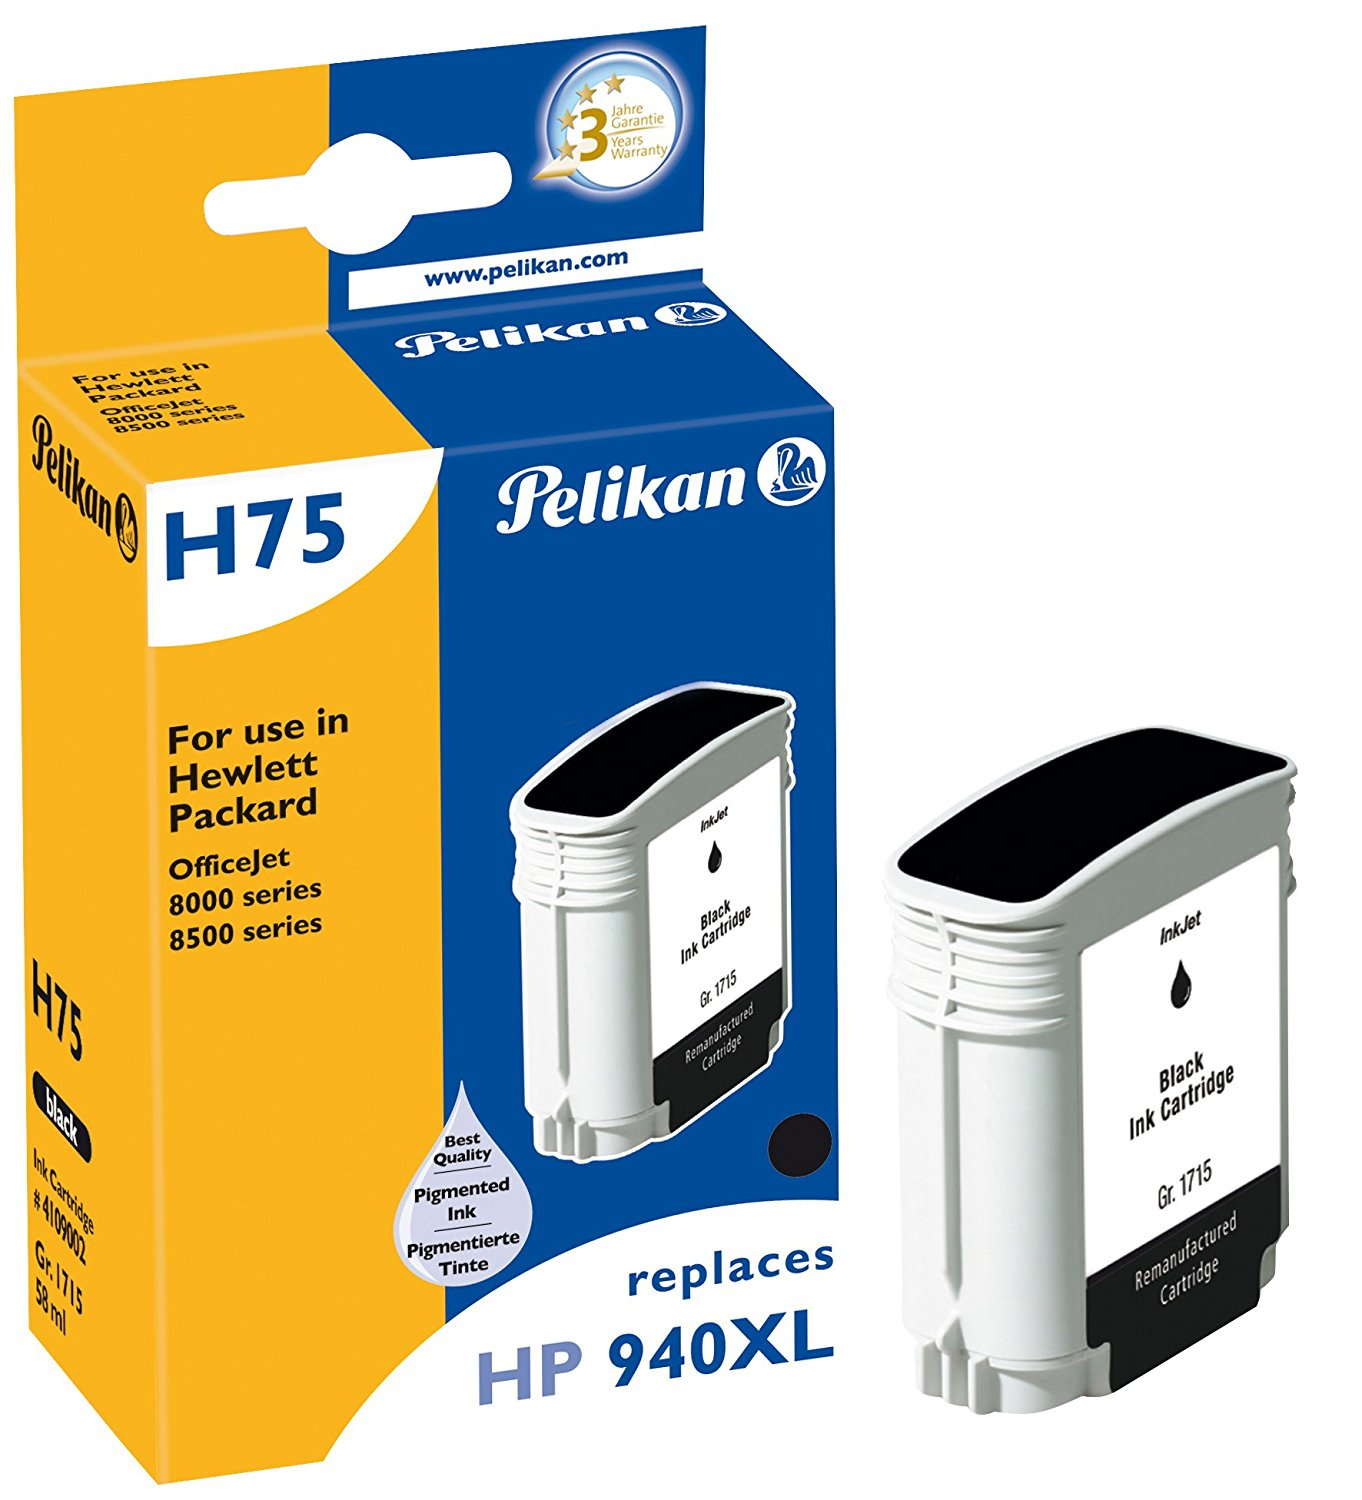 Pelikan Patrone H75 für HP 940XL bk OfficeJet 8000 etc. Black